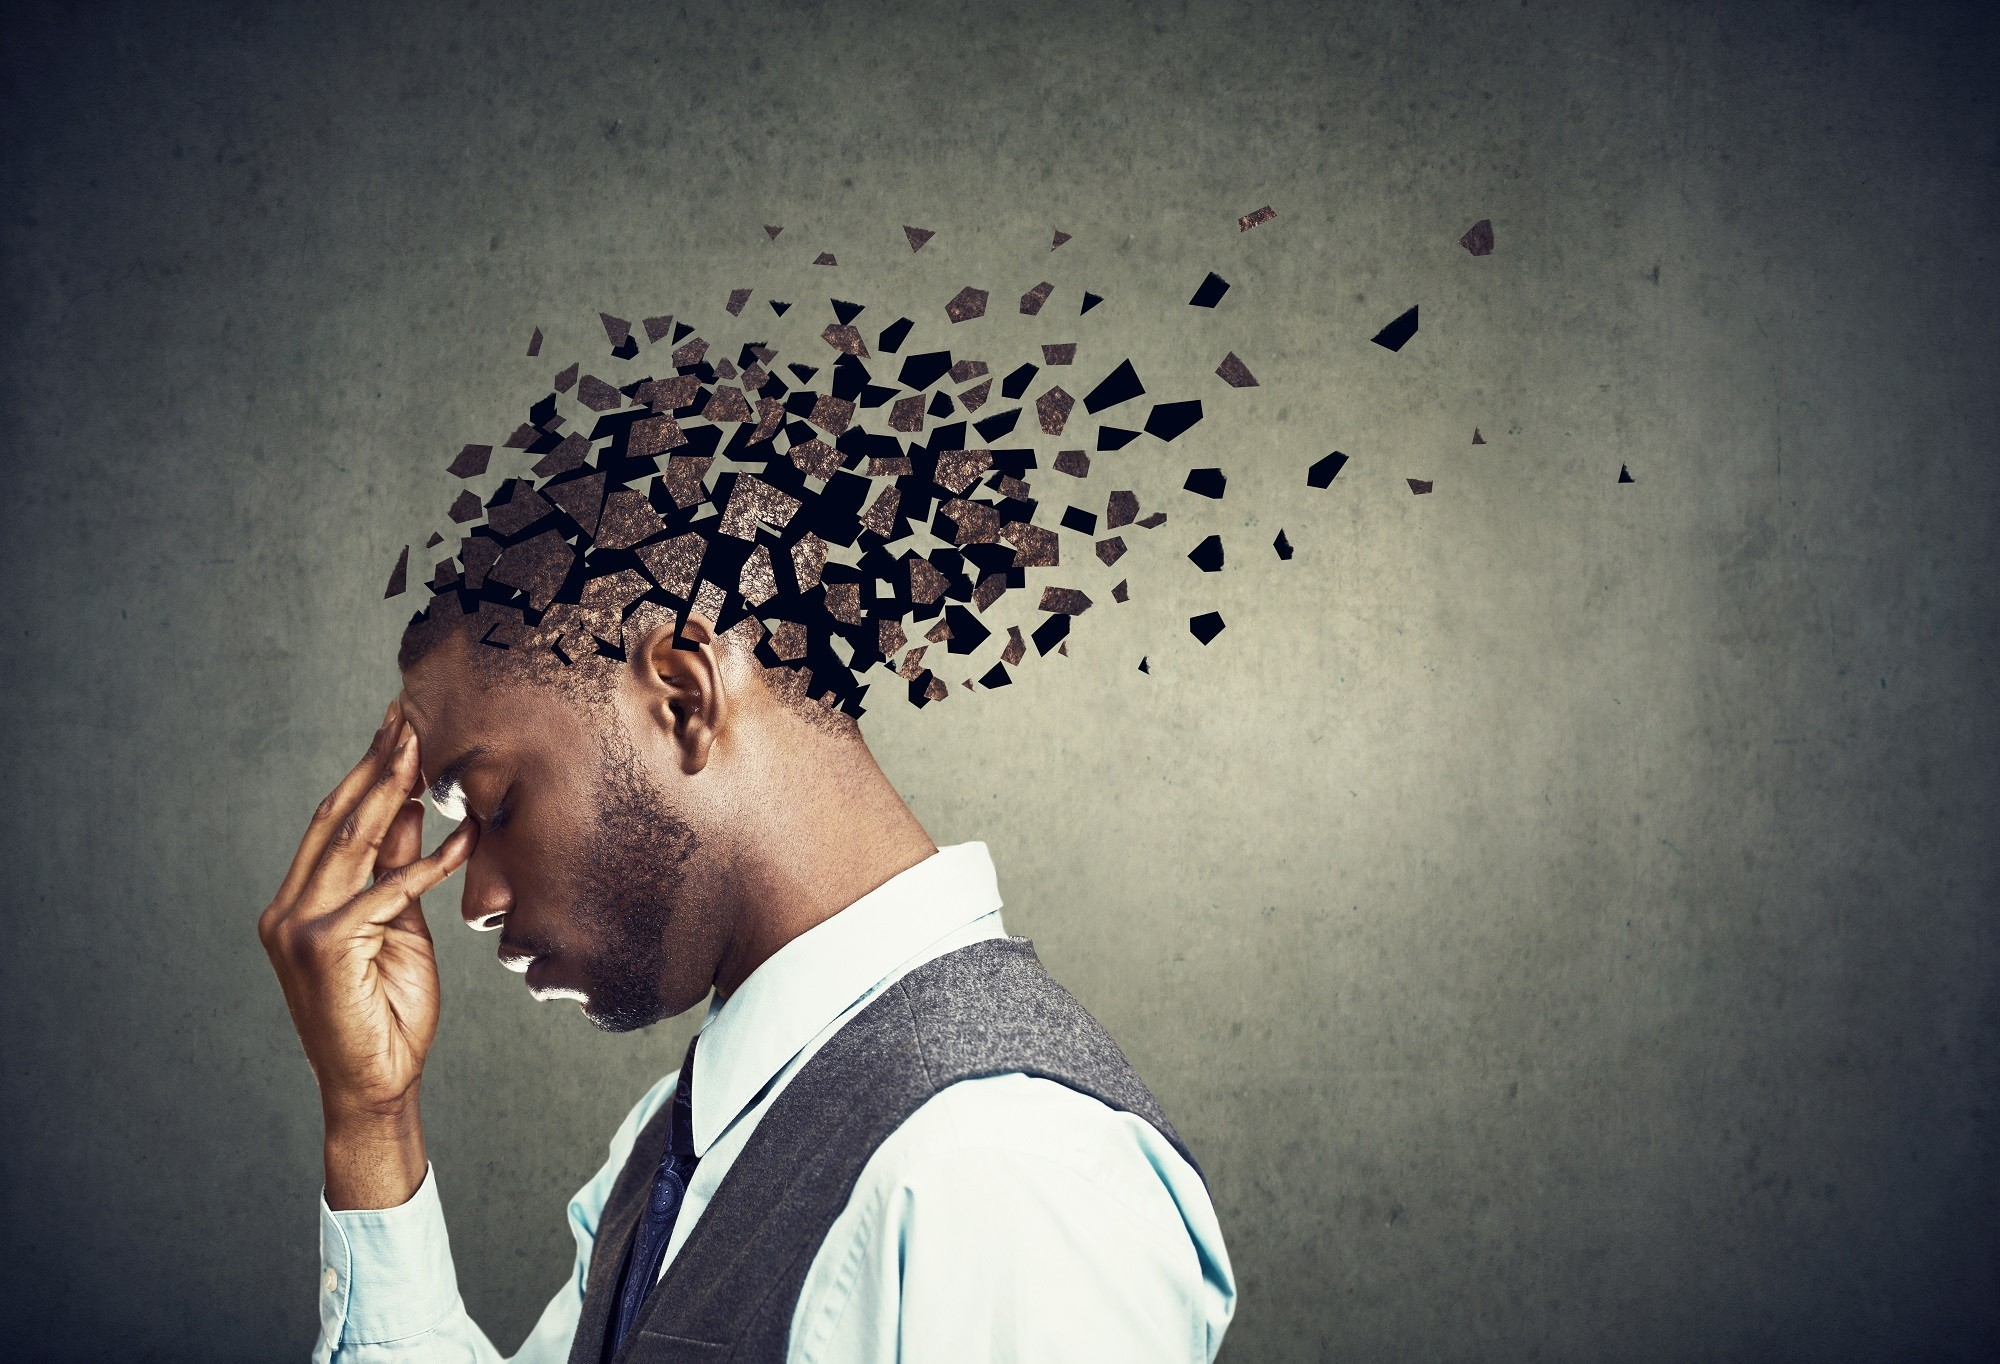 Side profile of a sad man losing parts of head as symbol of decreased mind function.